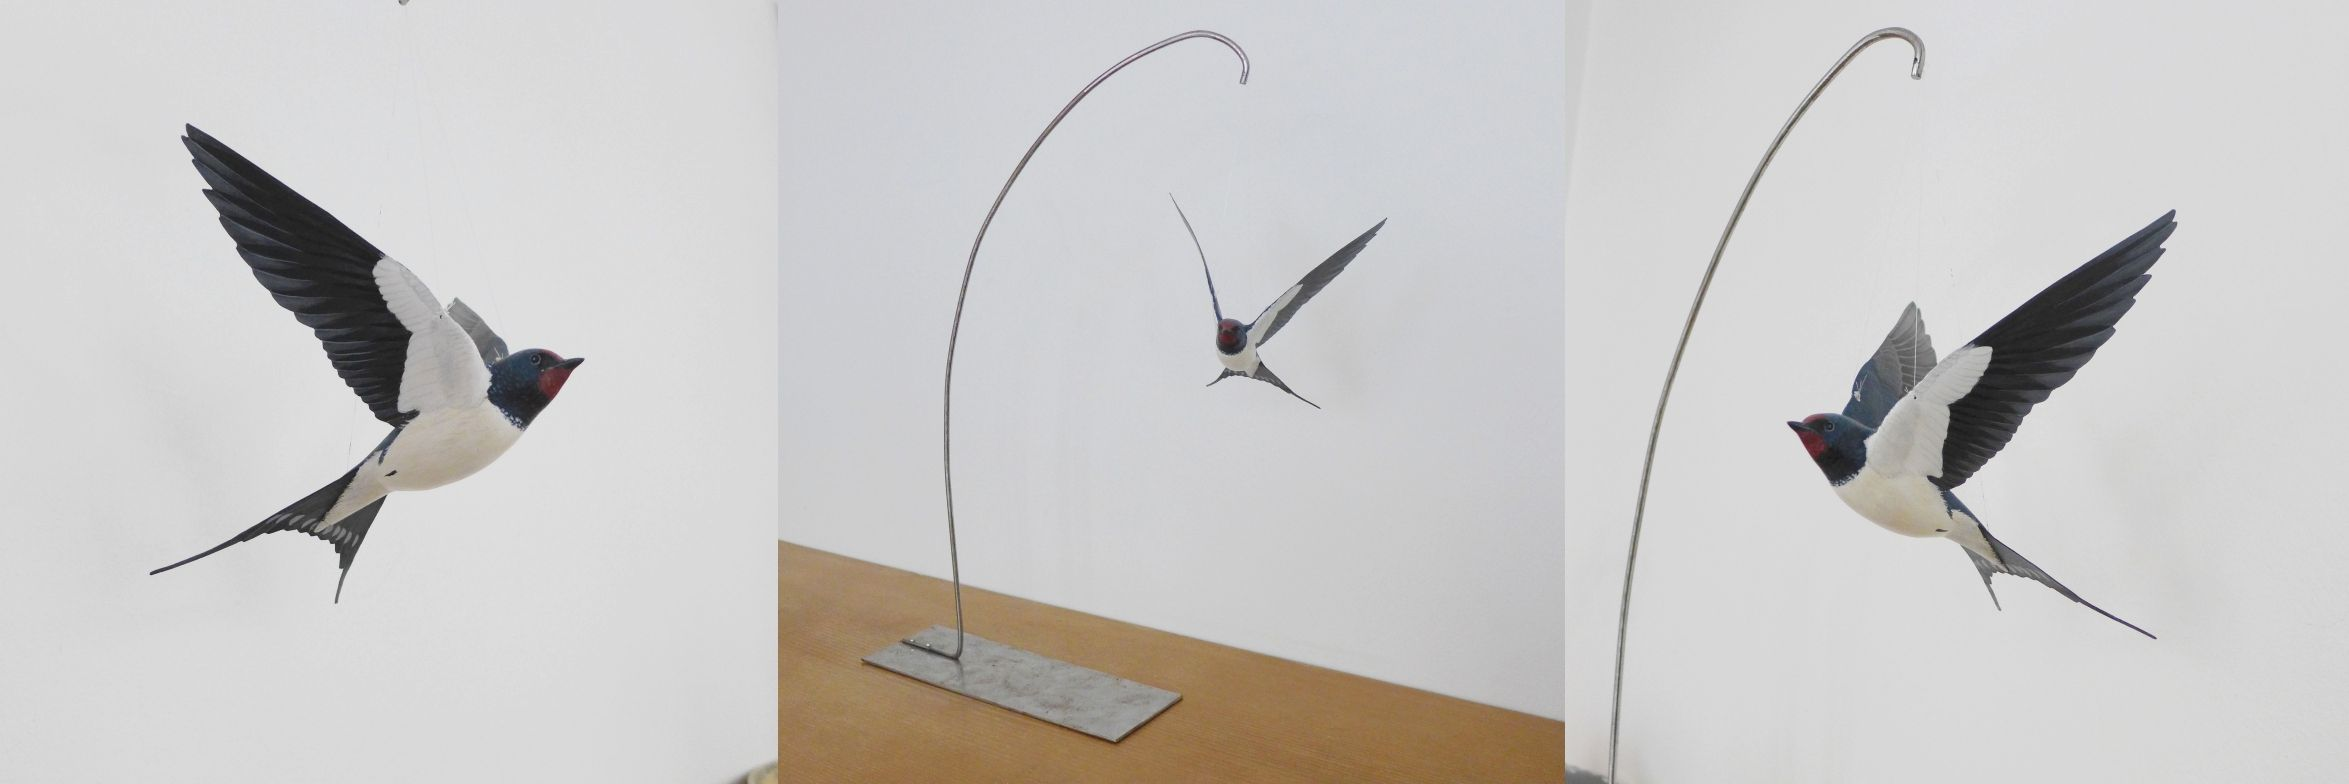 l'hirondelle rustique, the barn swallow, sculpture